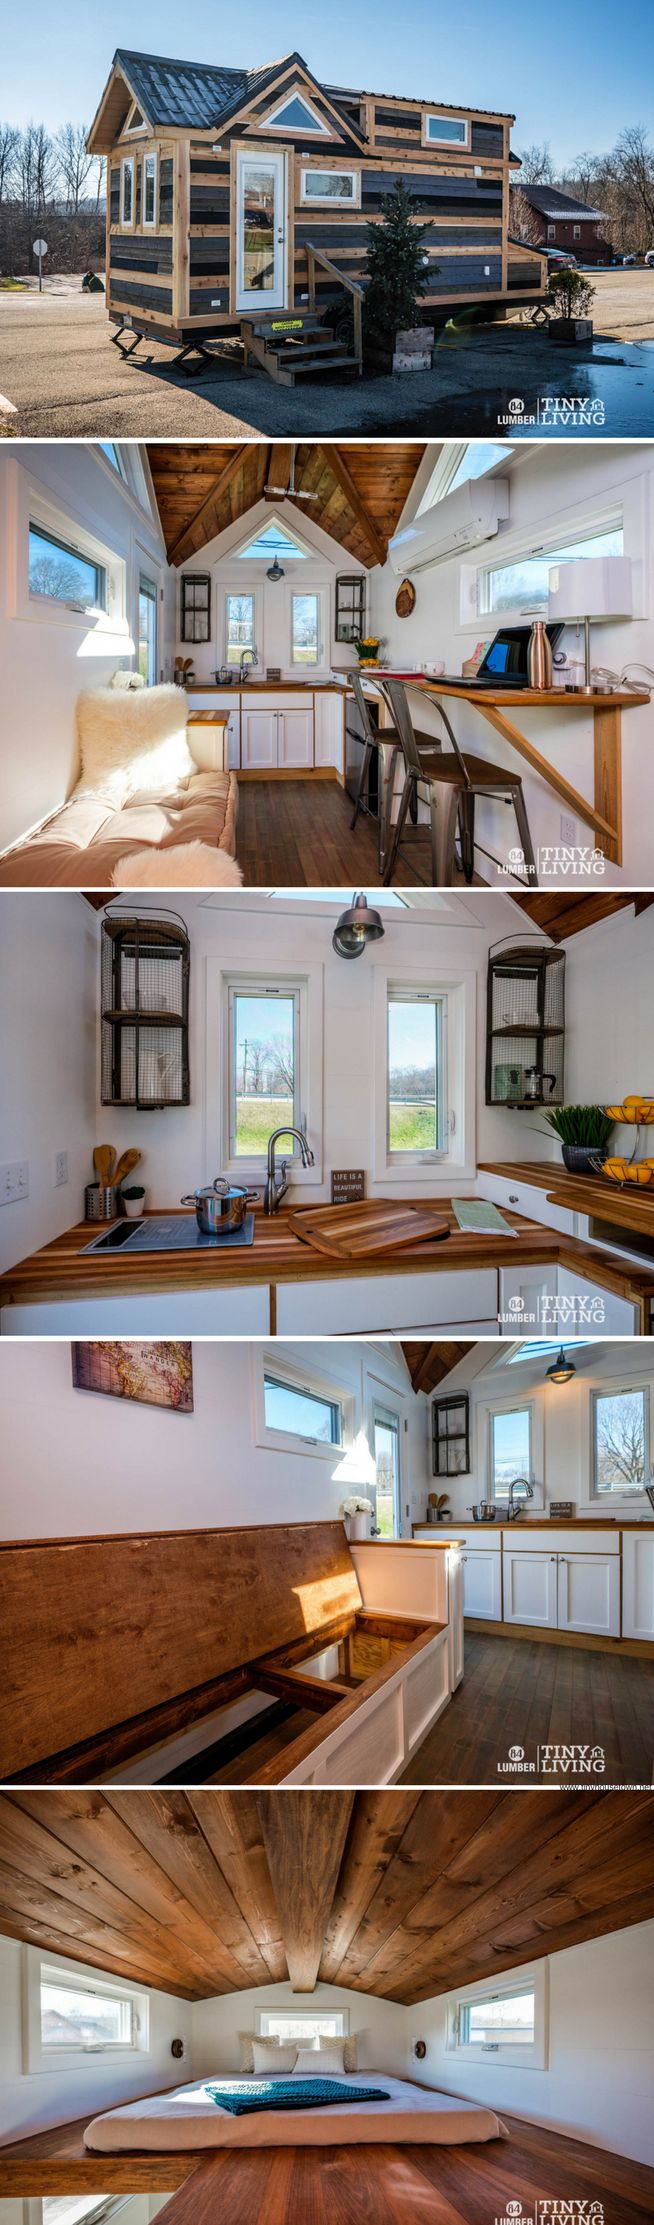 The Countryside tiny house from 84 Lumber's line of tiny homes